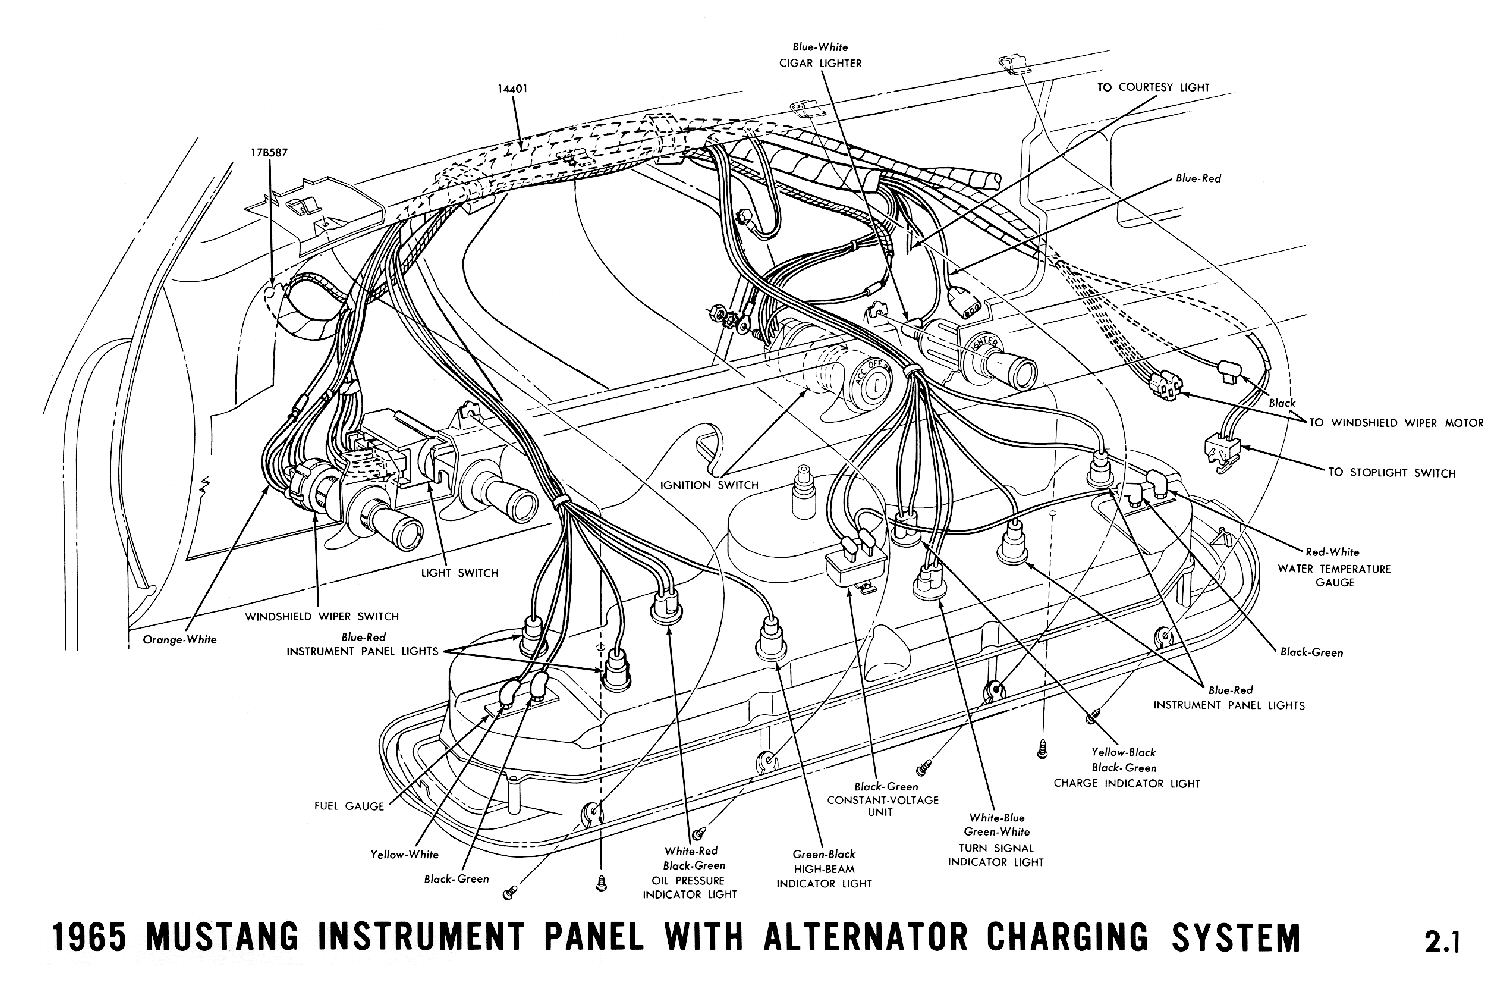 1965a 1965 mustang wiring diagrams average joe restoration 65 mustang dash wiring diagram at bayanpartner.co